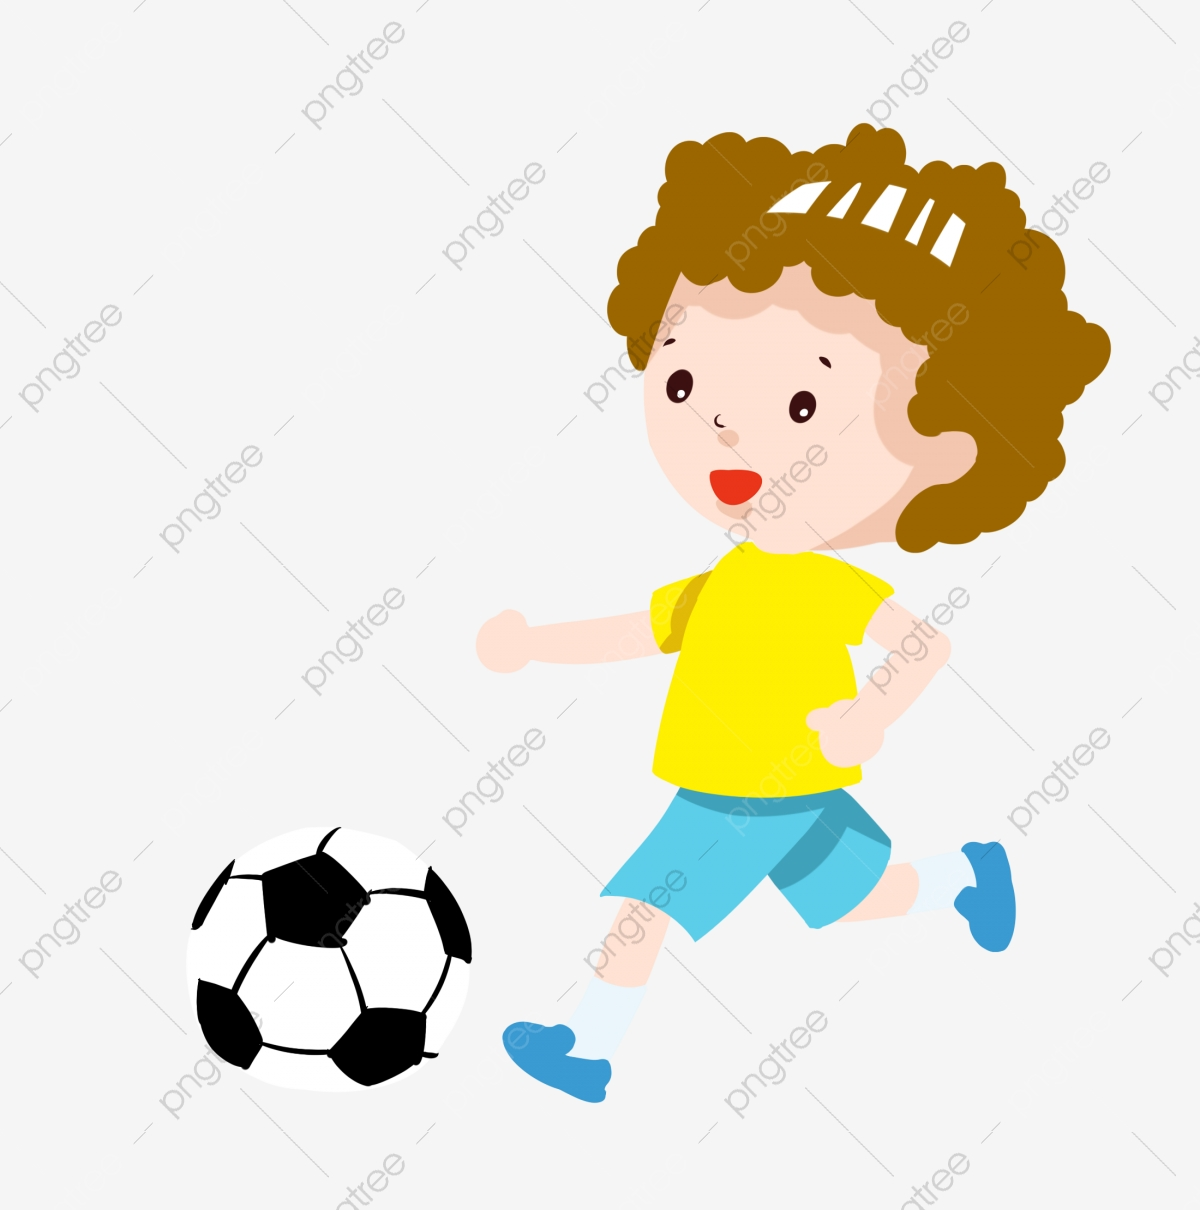 Education out play football. Pe clipart physical work